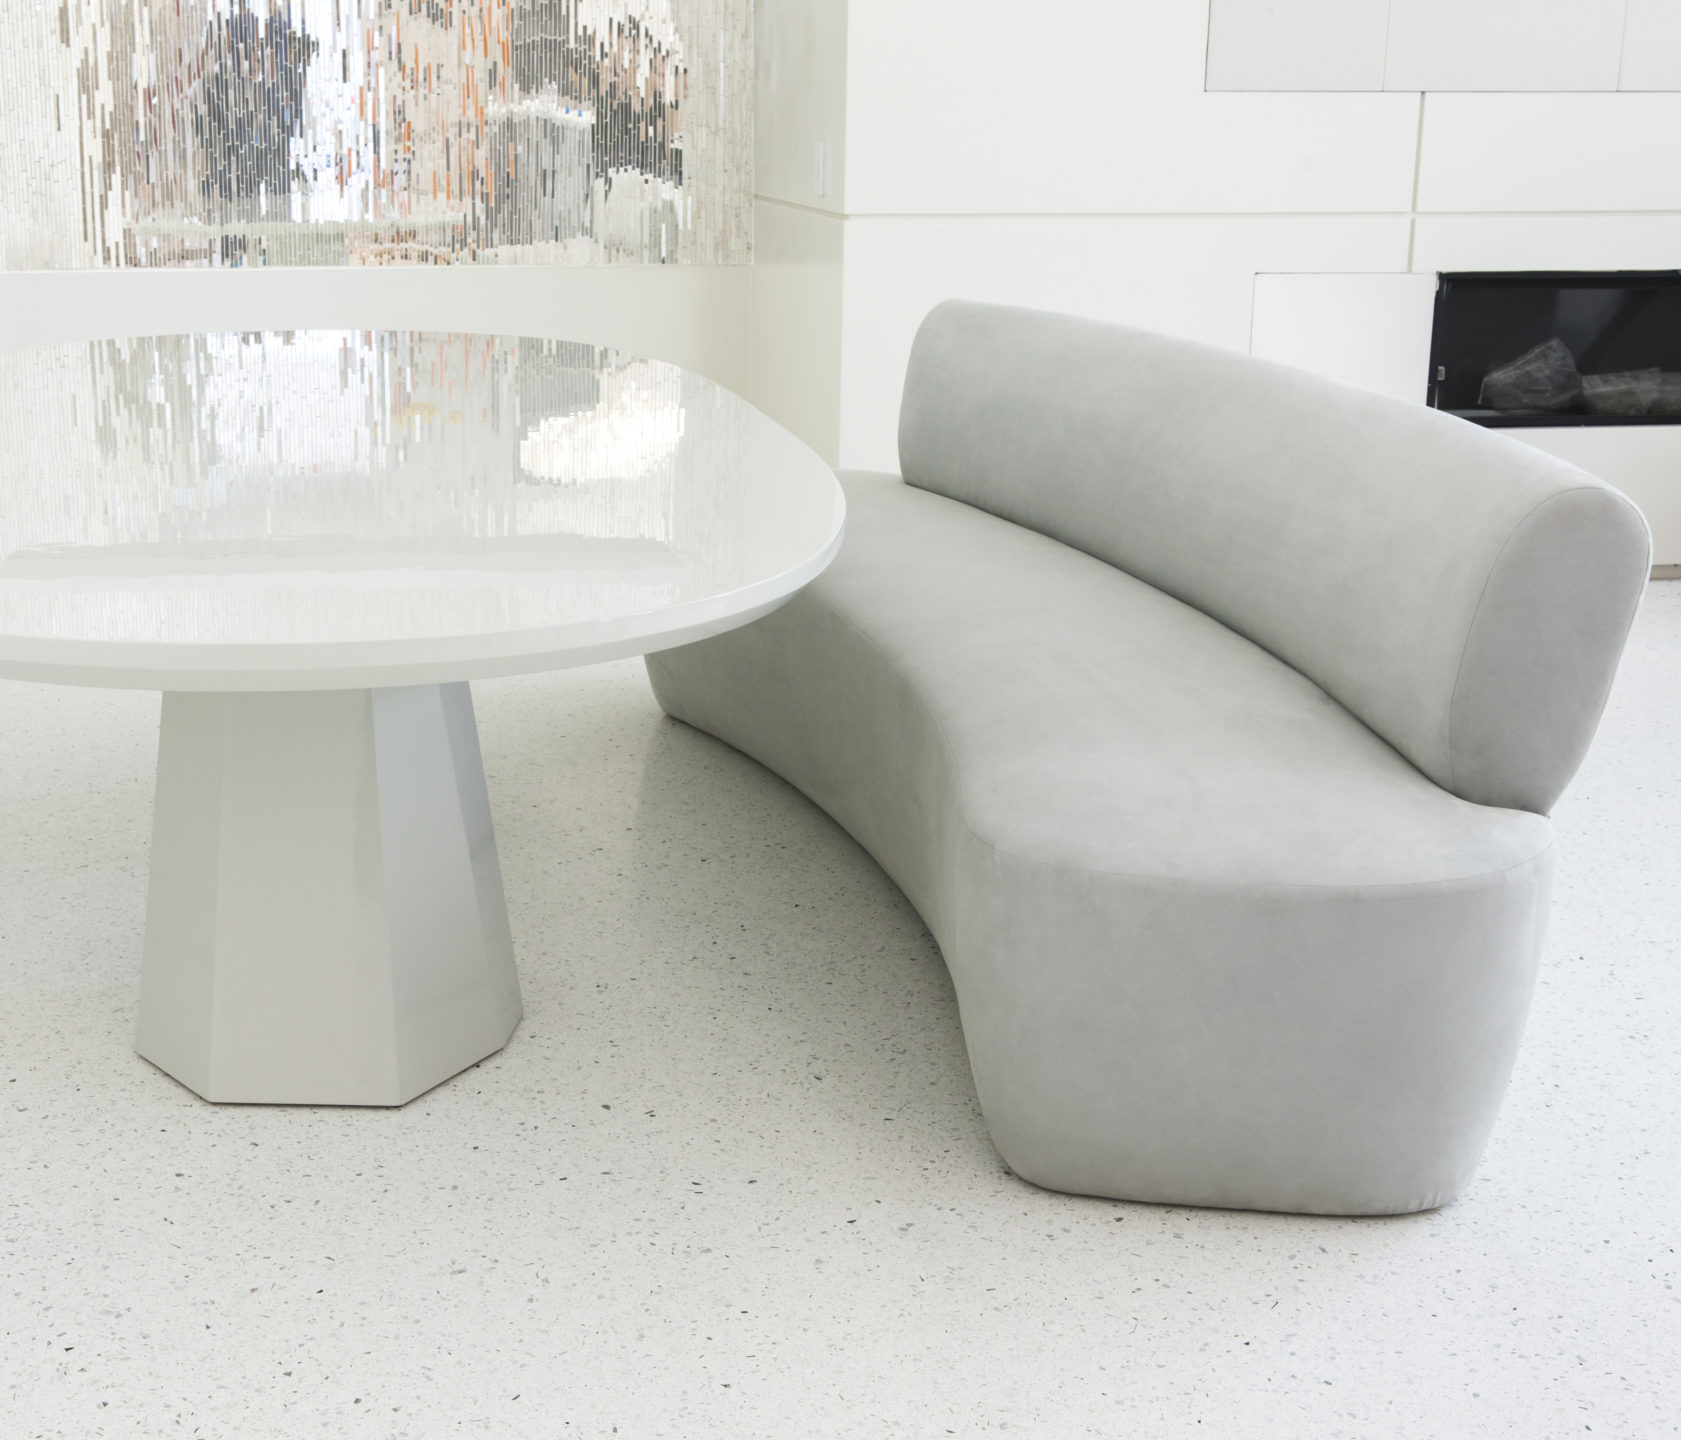 Studio_William_Hefner_products_Lombard_Banquette_Donze_Breakfast Nook_Table and Couch_04-Edit